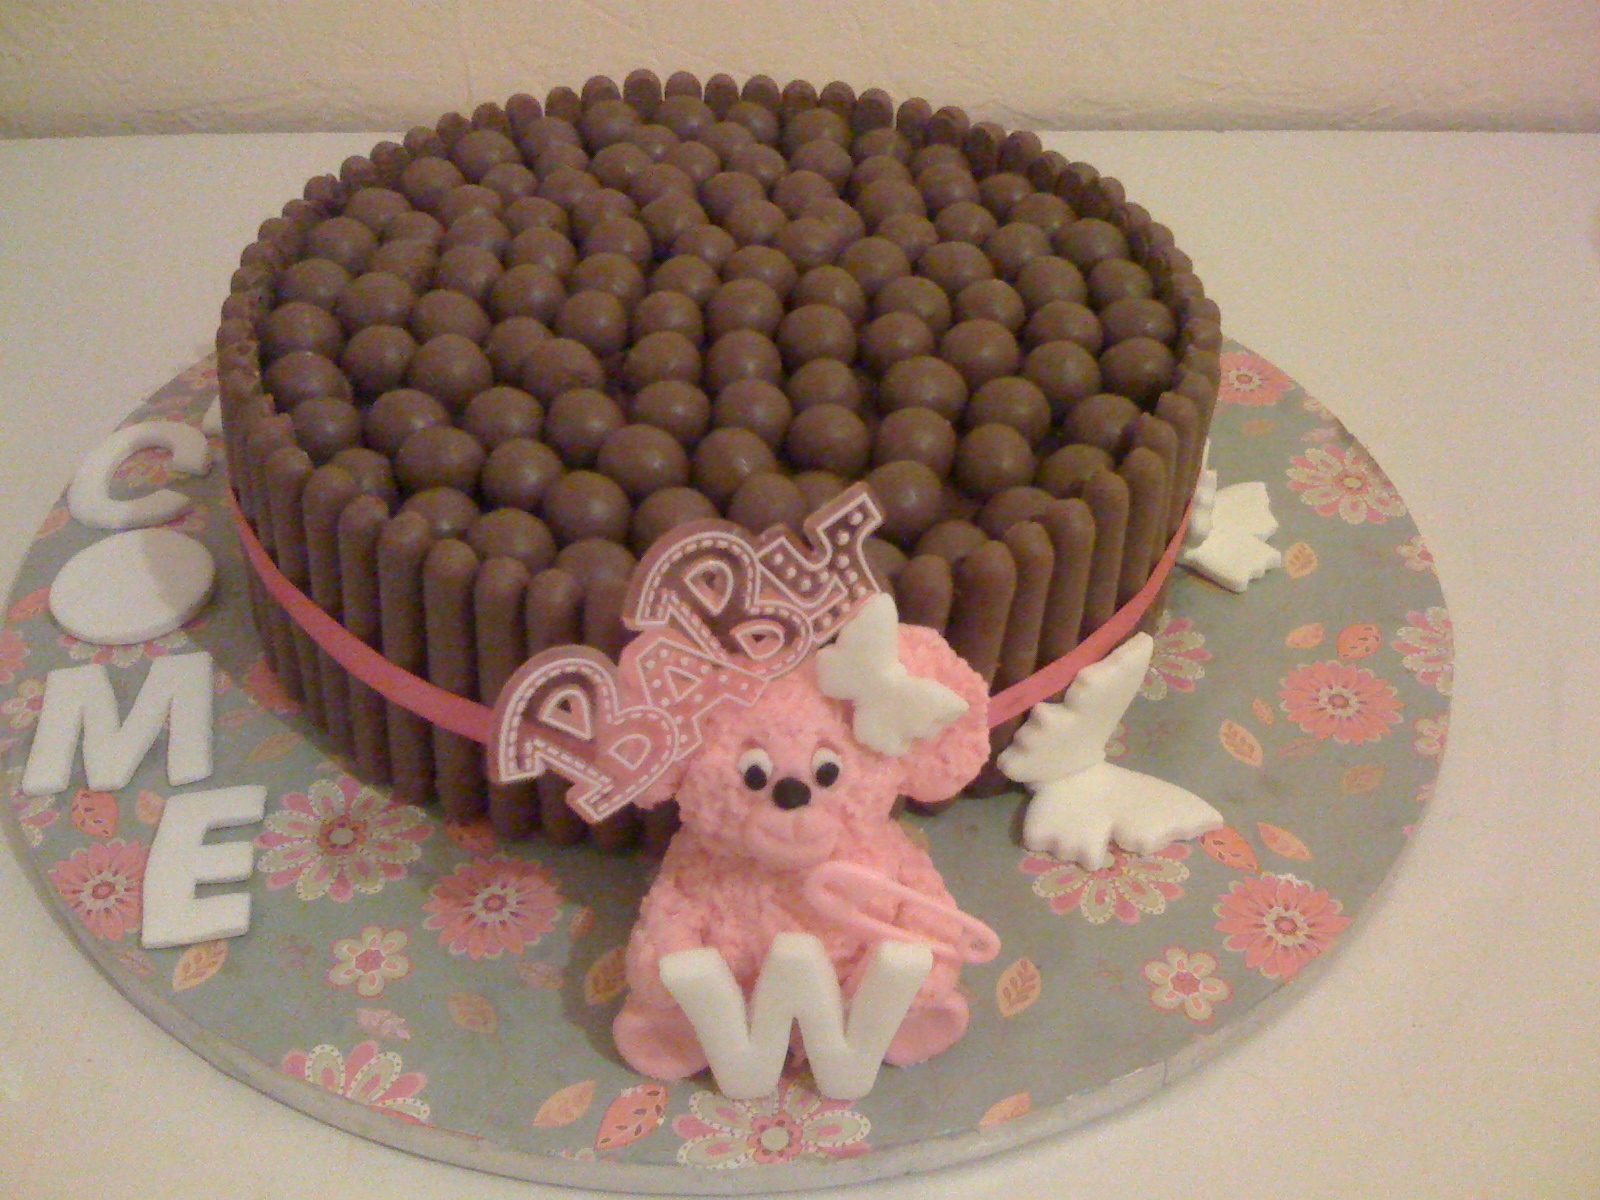 double chocolate chip fudge cake with chocolate fingers and malteasers on top!!